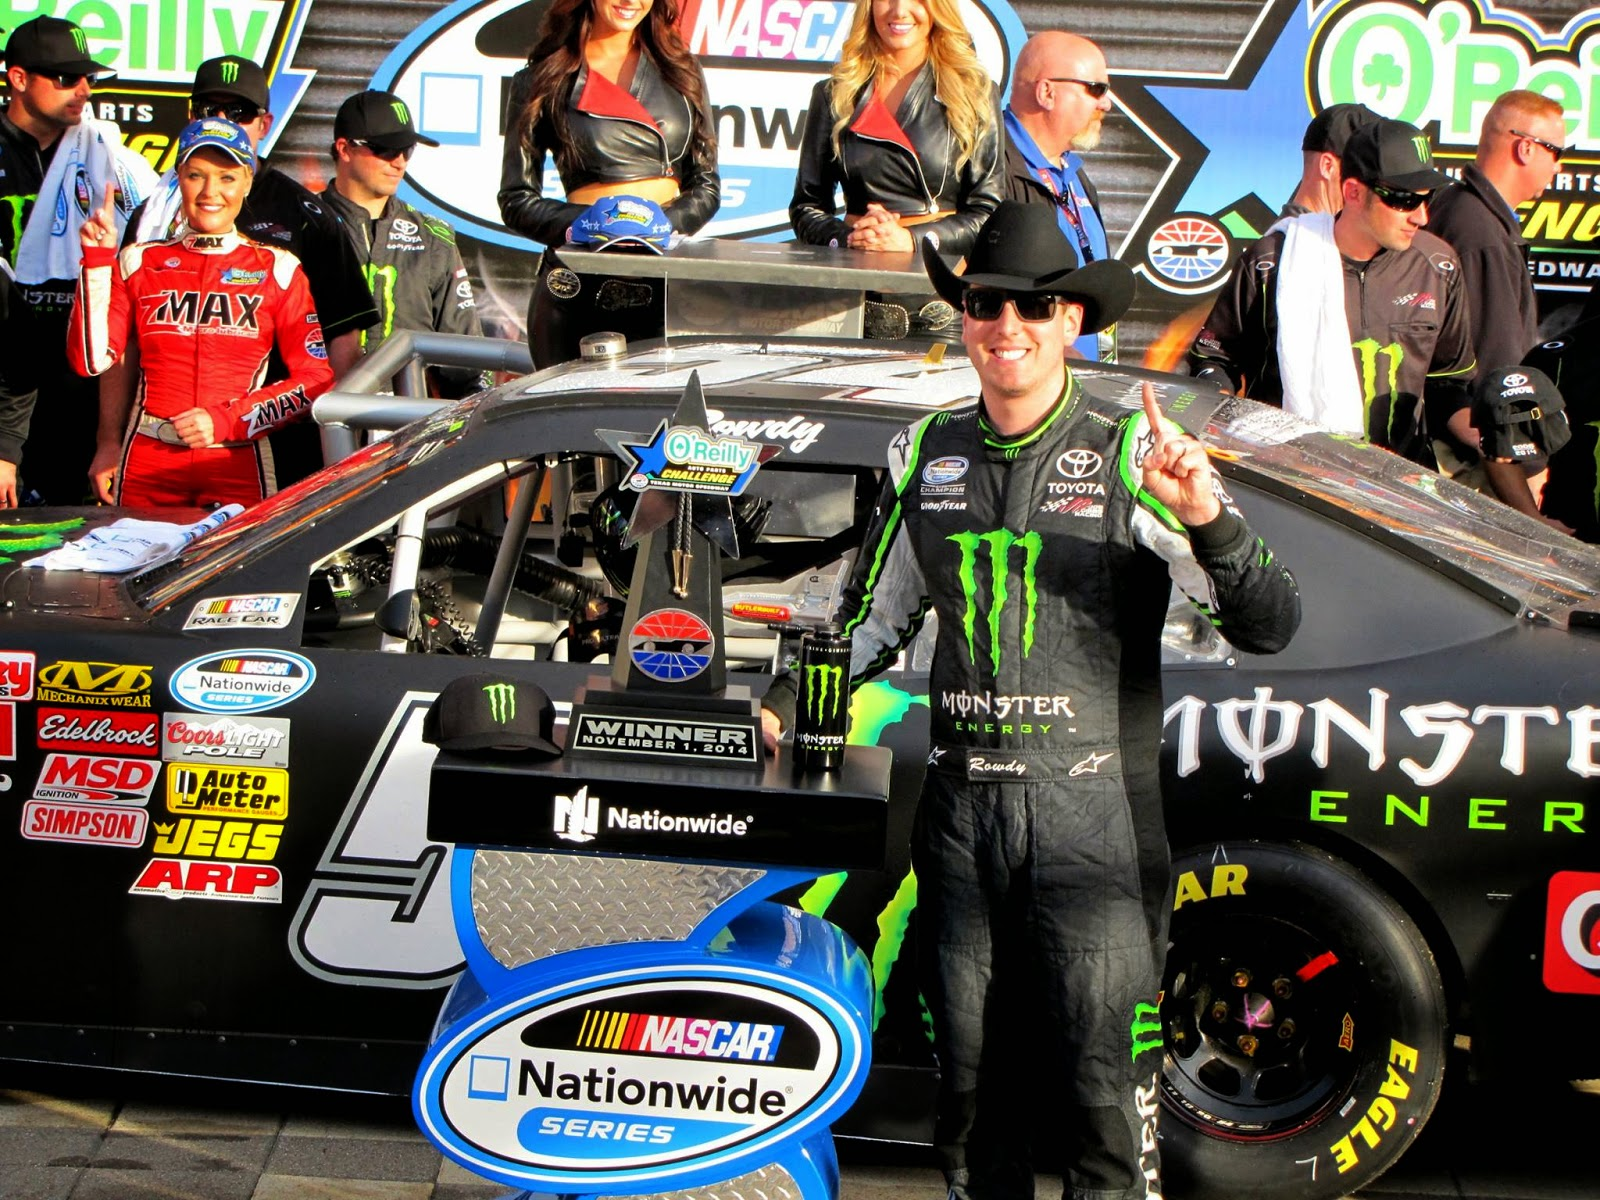 Kyle Busch back in Victory Lane at Texas Motor Speedway in ...